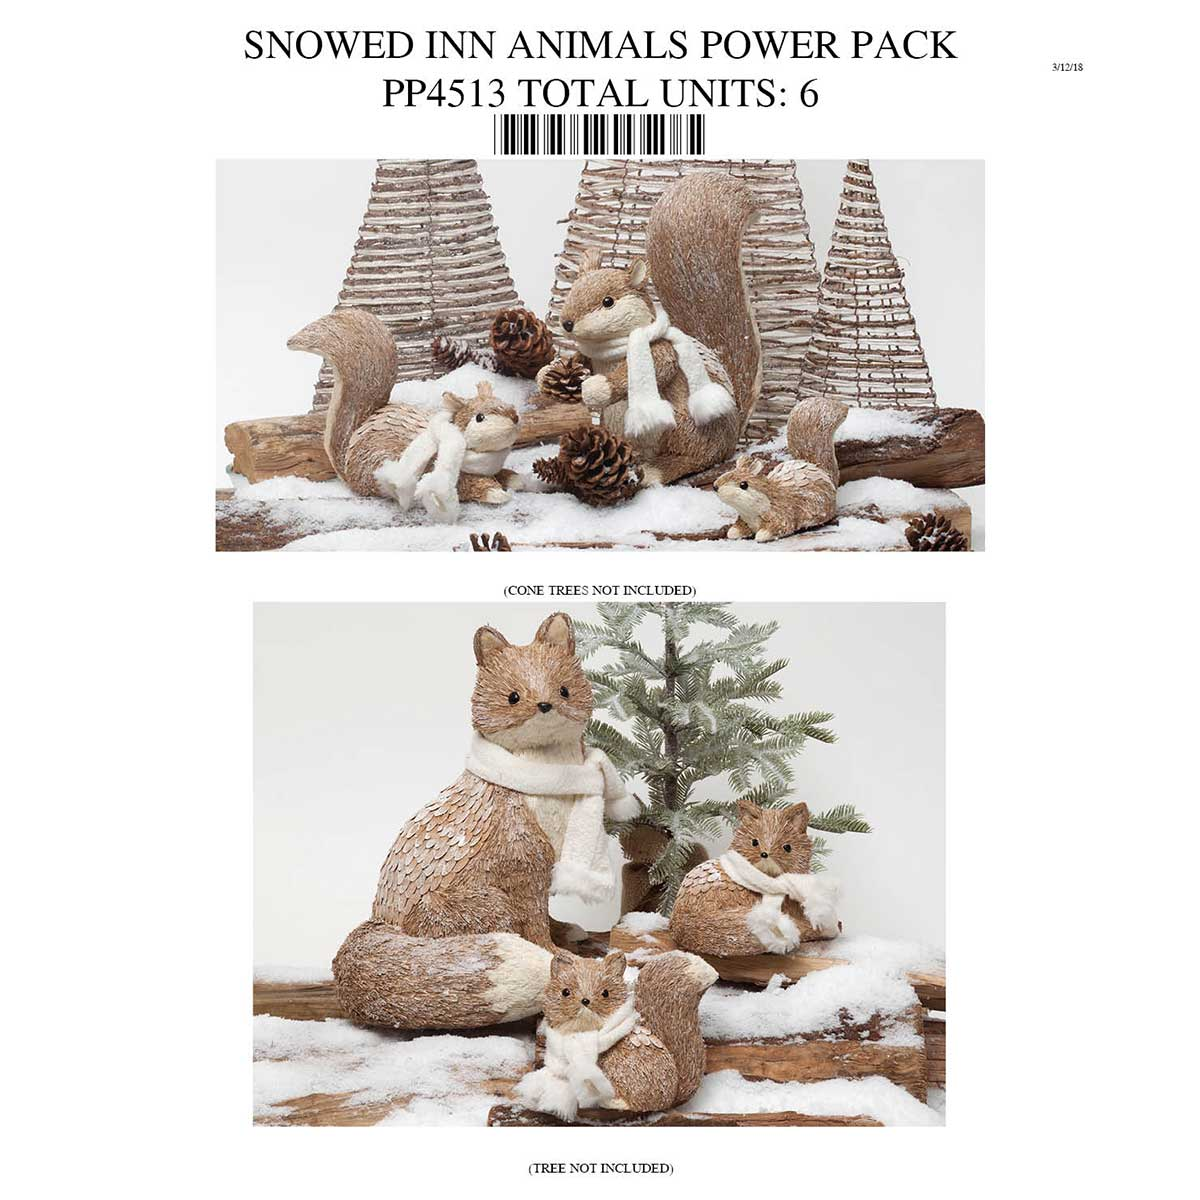 Snowed Inn Animals Collection Power Pack 6 Units